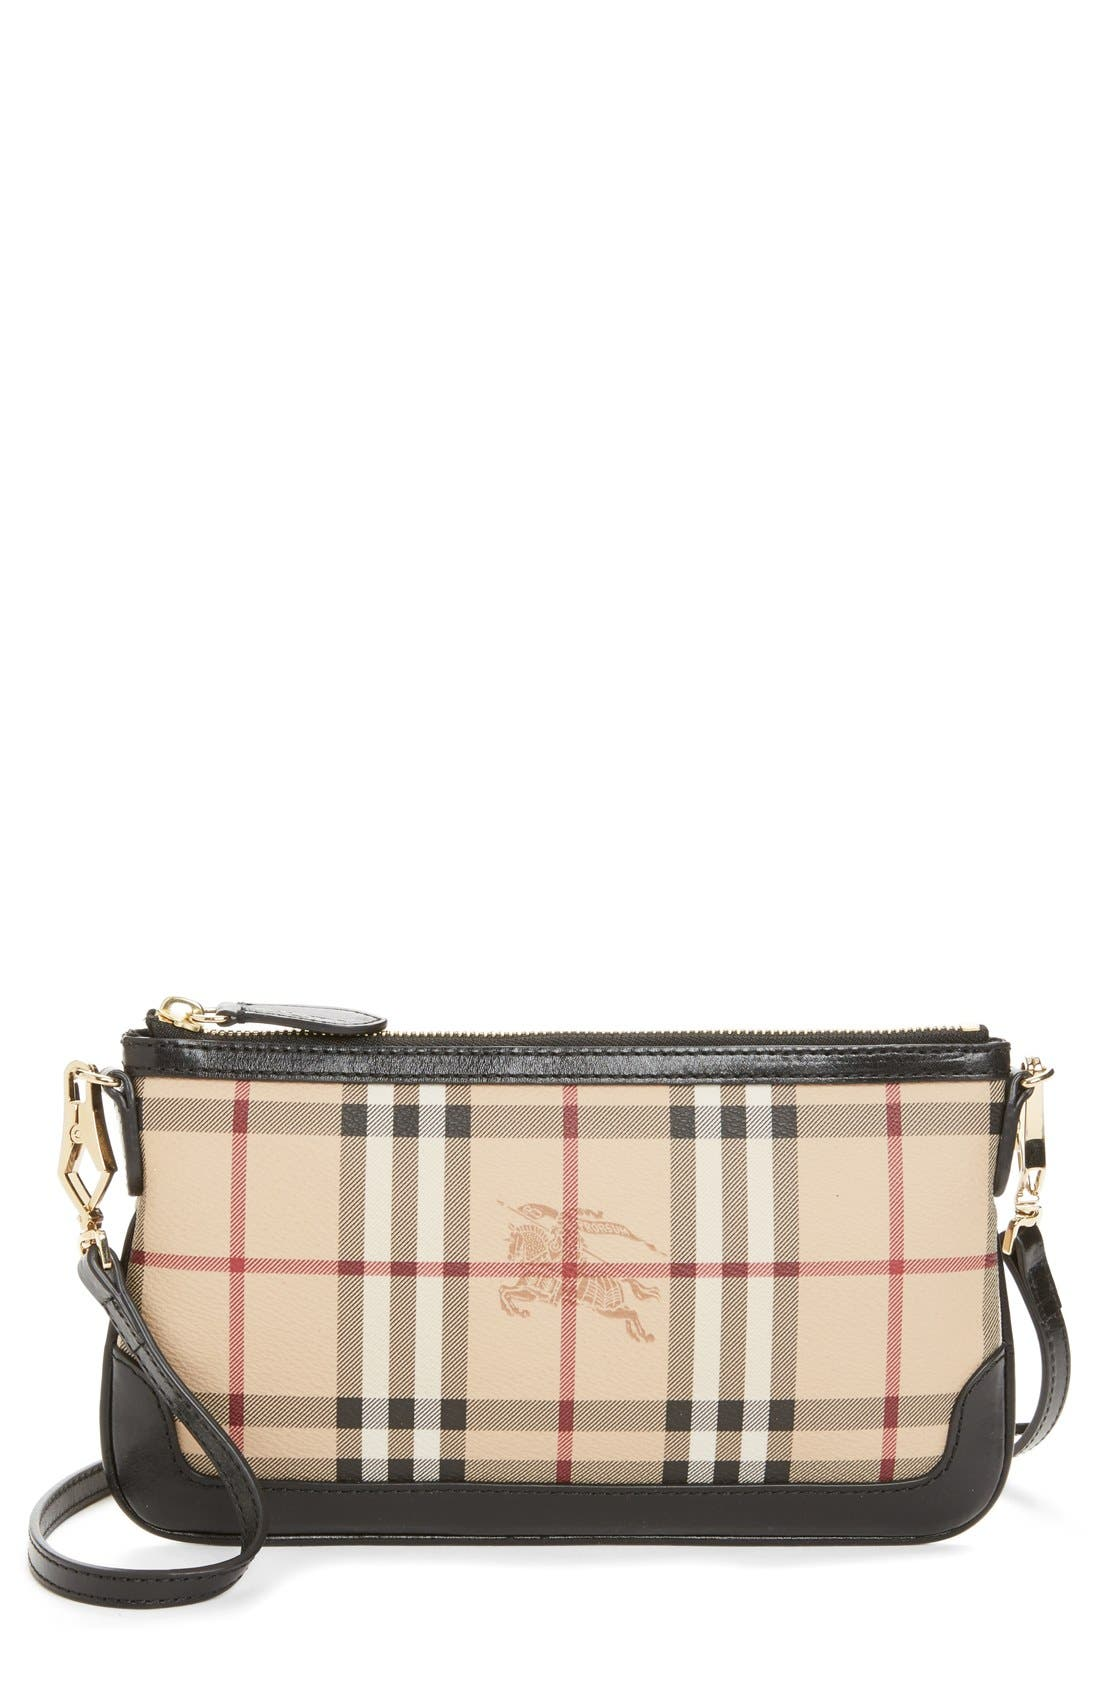 Main Image - Burberry 'Peyton - Haymarket Check' Crossbody Bag